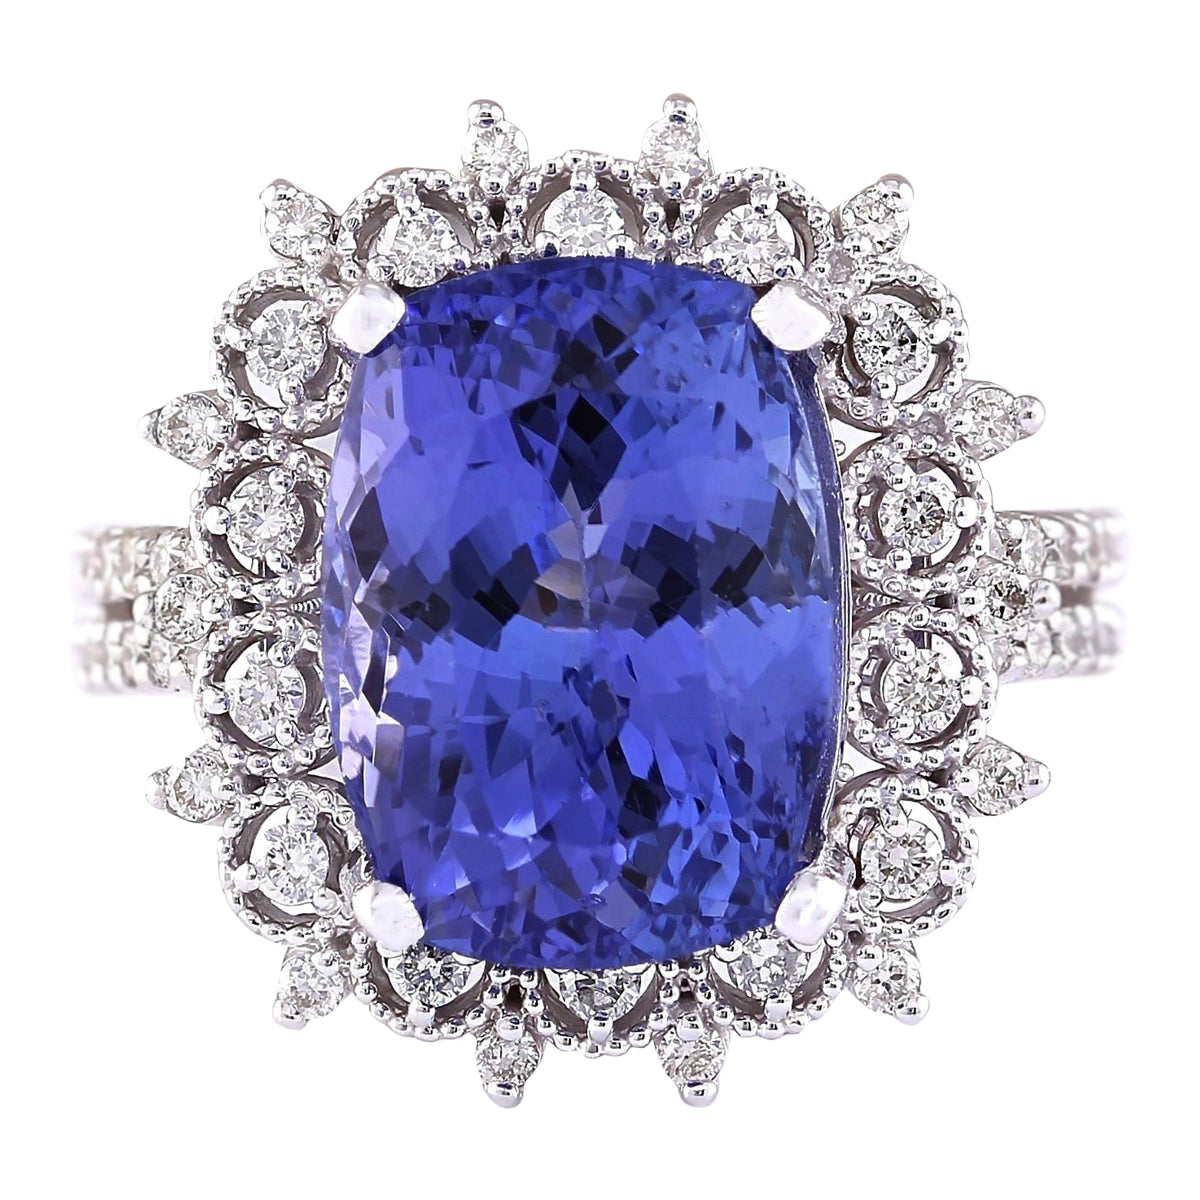 10.30 Carat Natural Tanzanite 14K White Gold Diamond Ring